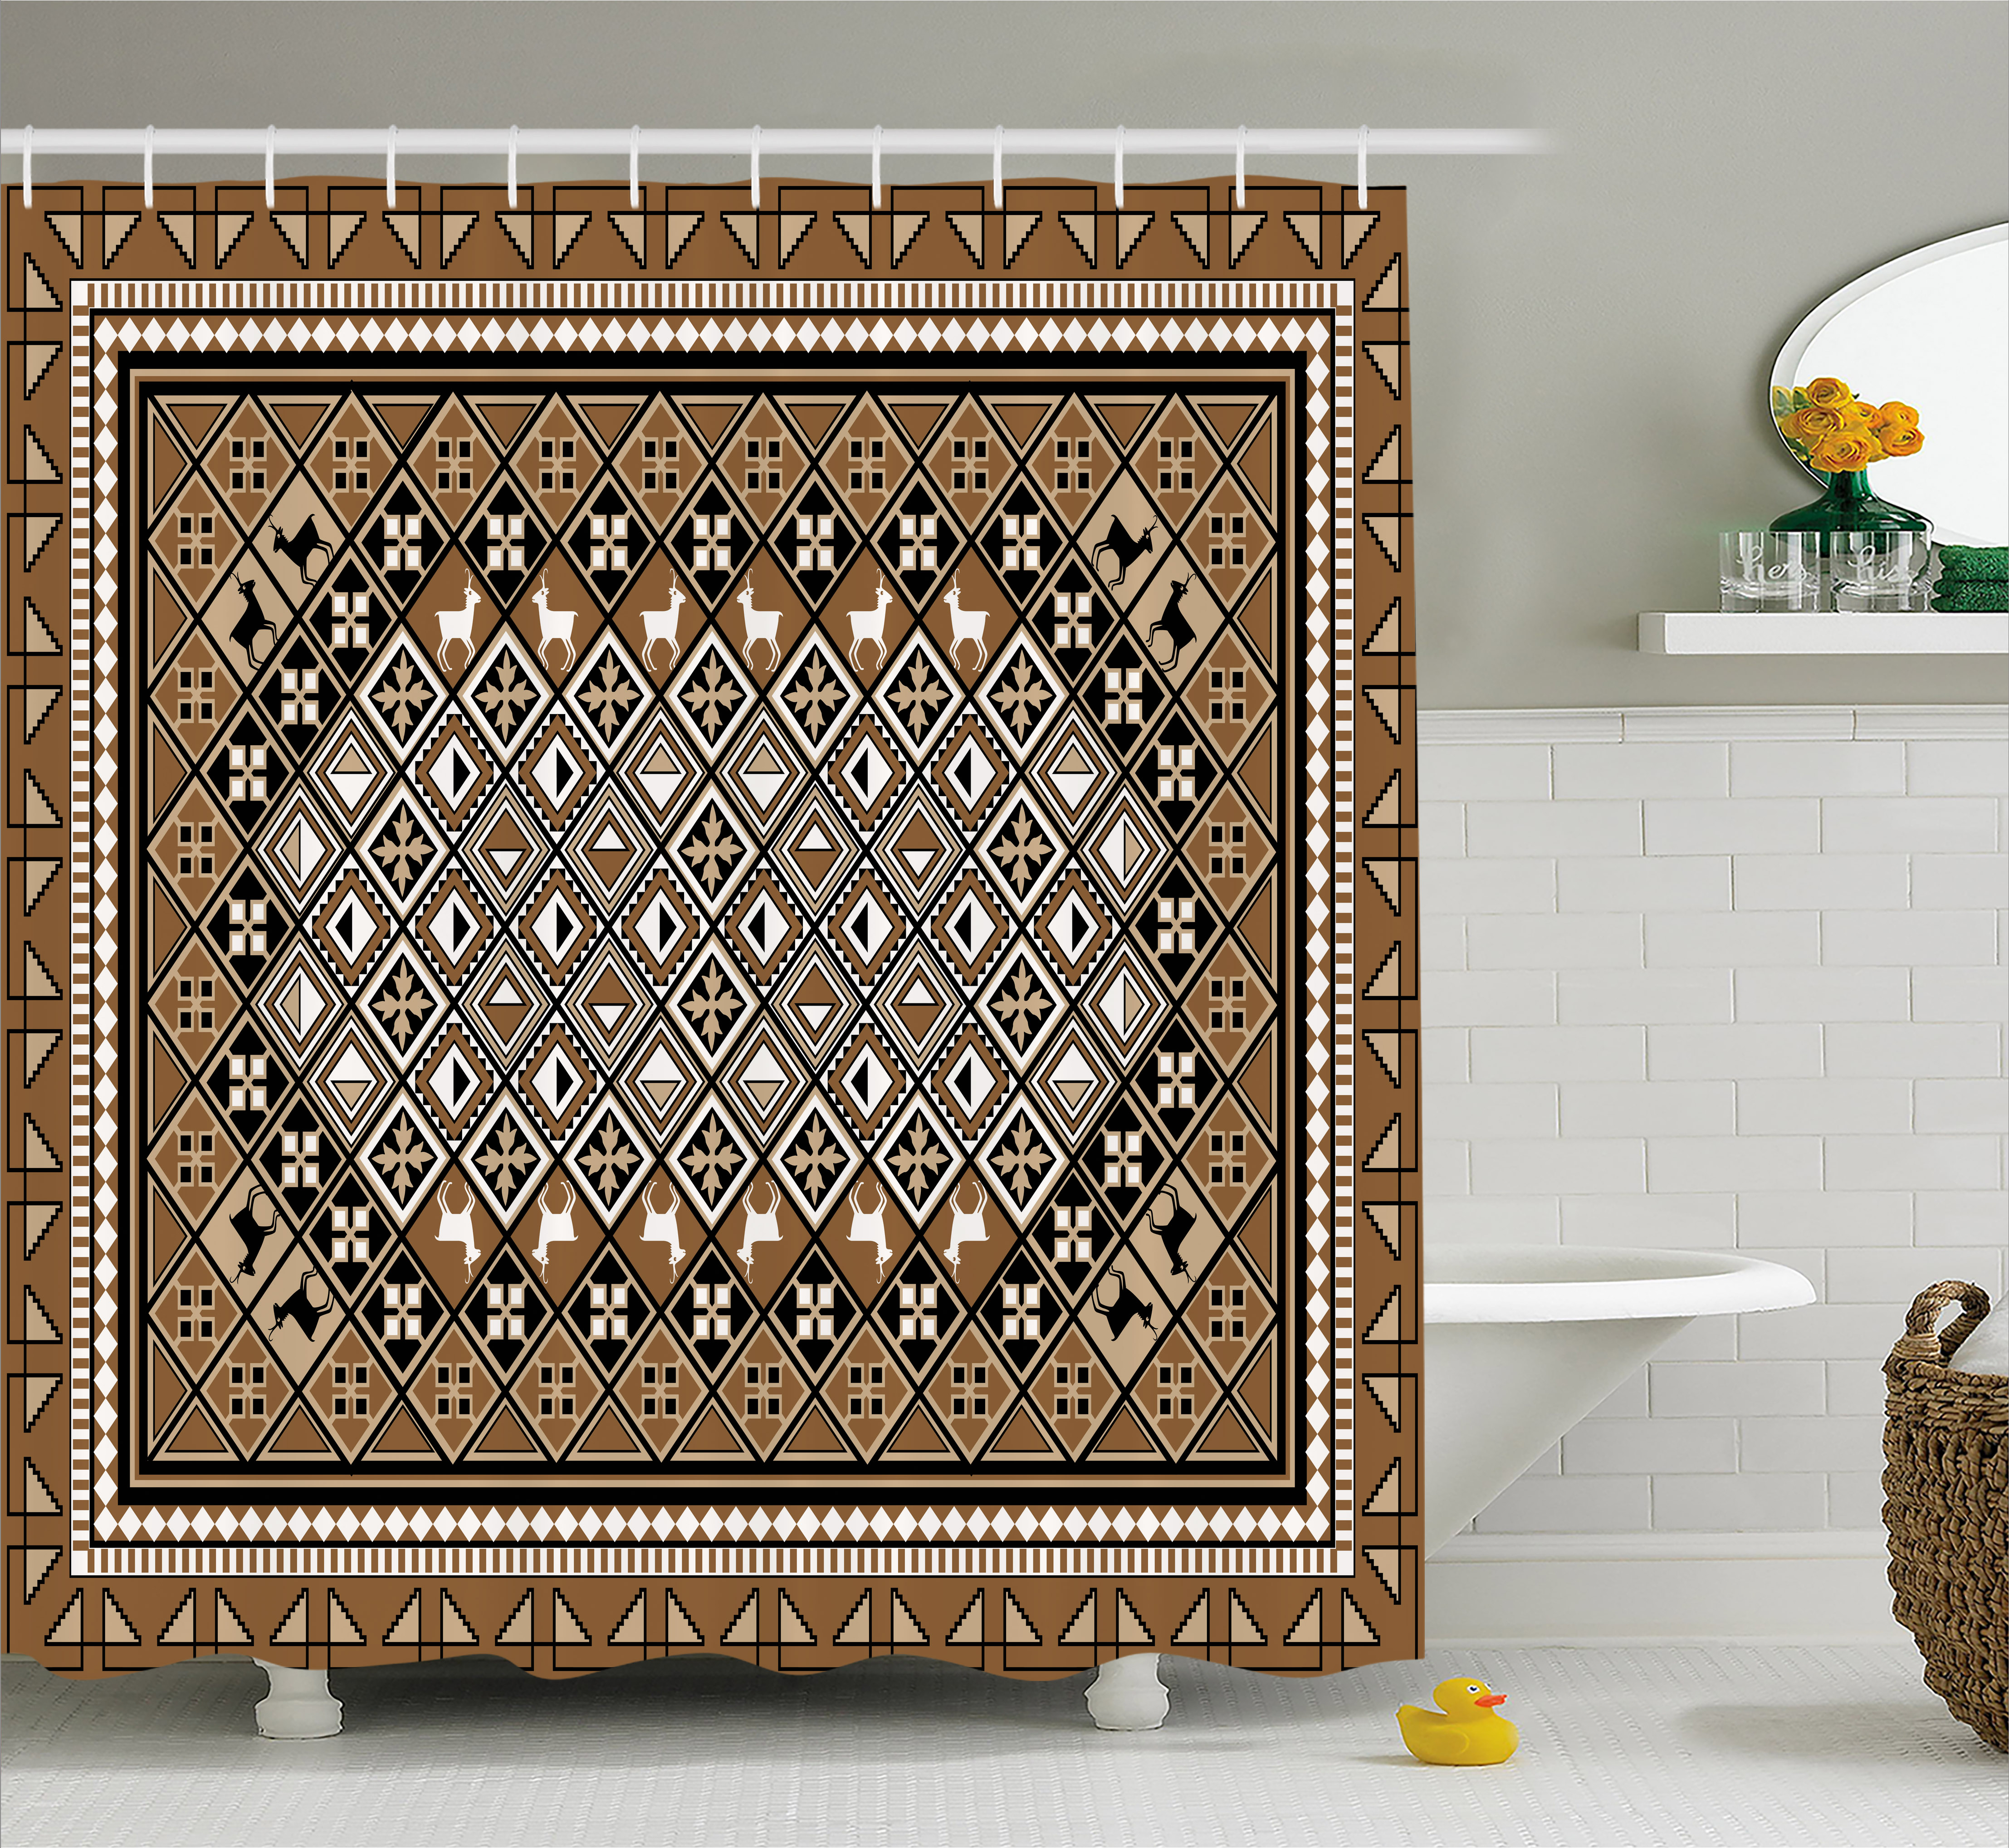 Turkish Pattern Shower Curtain, Geometrical Ethnic Eastern Frame With  Diagonal Checks And Deer, Fabric